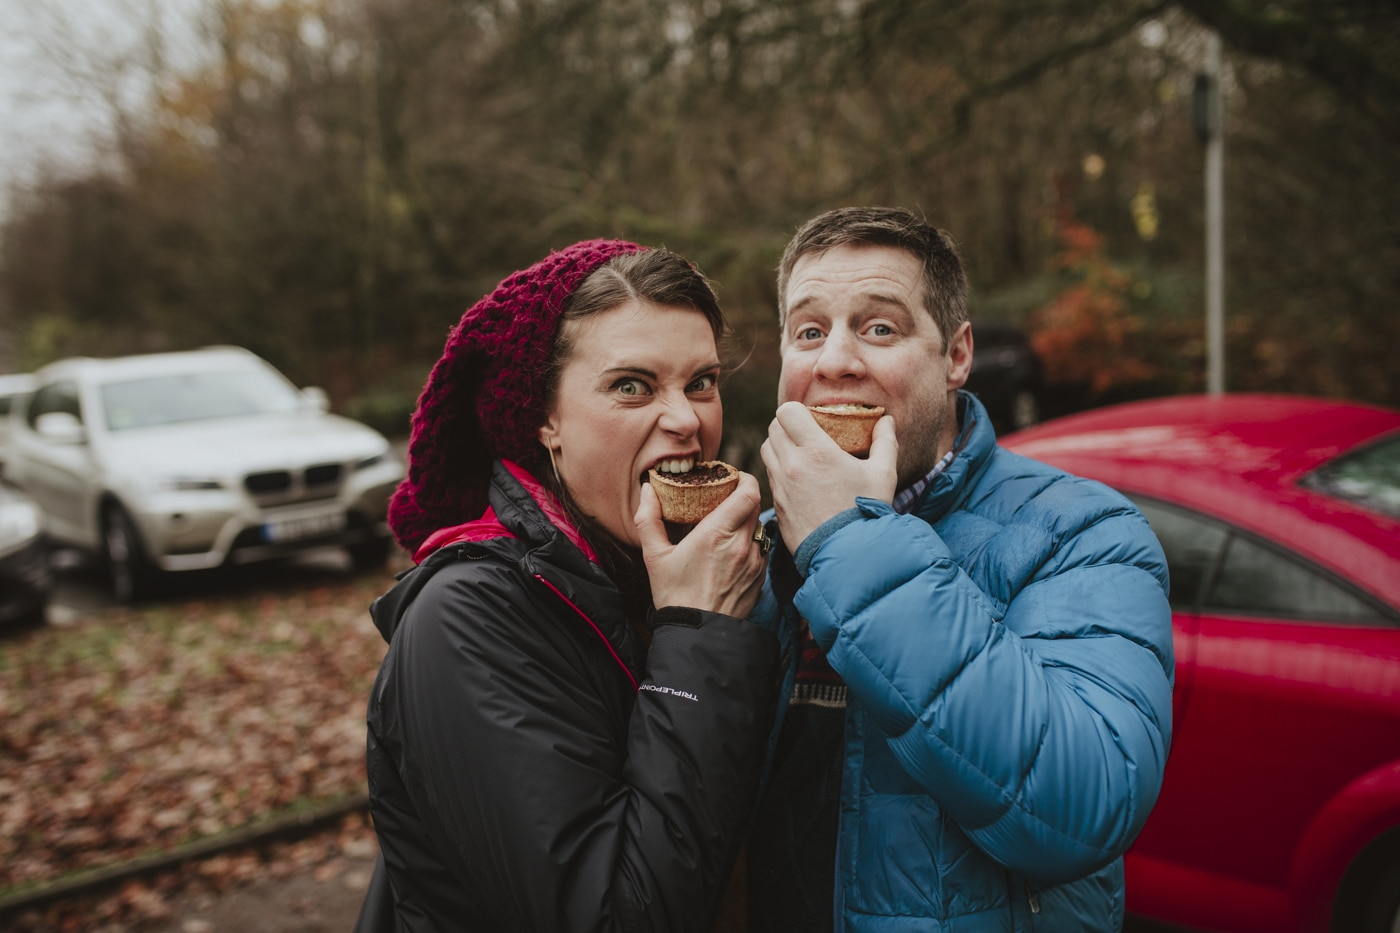 Eating pies in cumbria by Josh Wyborn Lake District and Cumbria Based Wedding Photographer